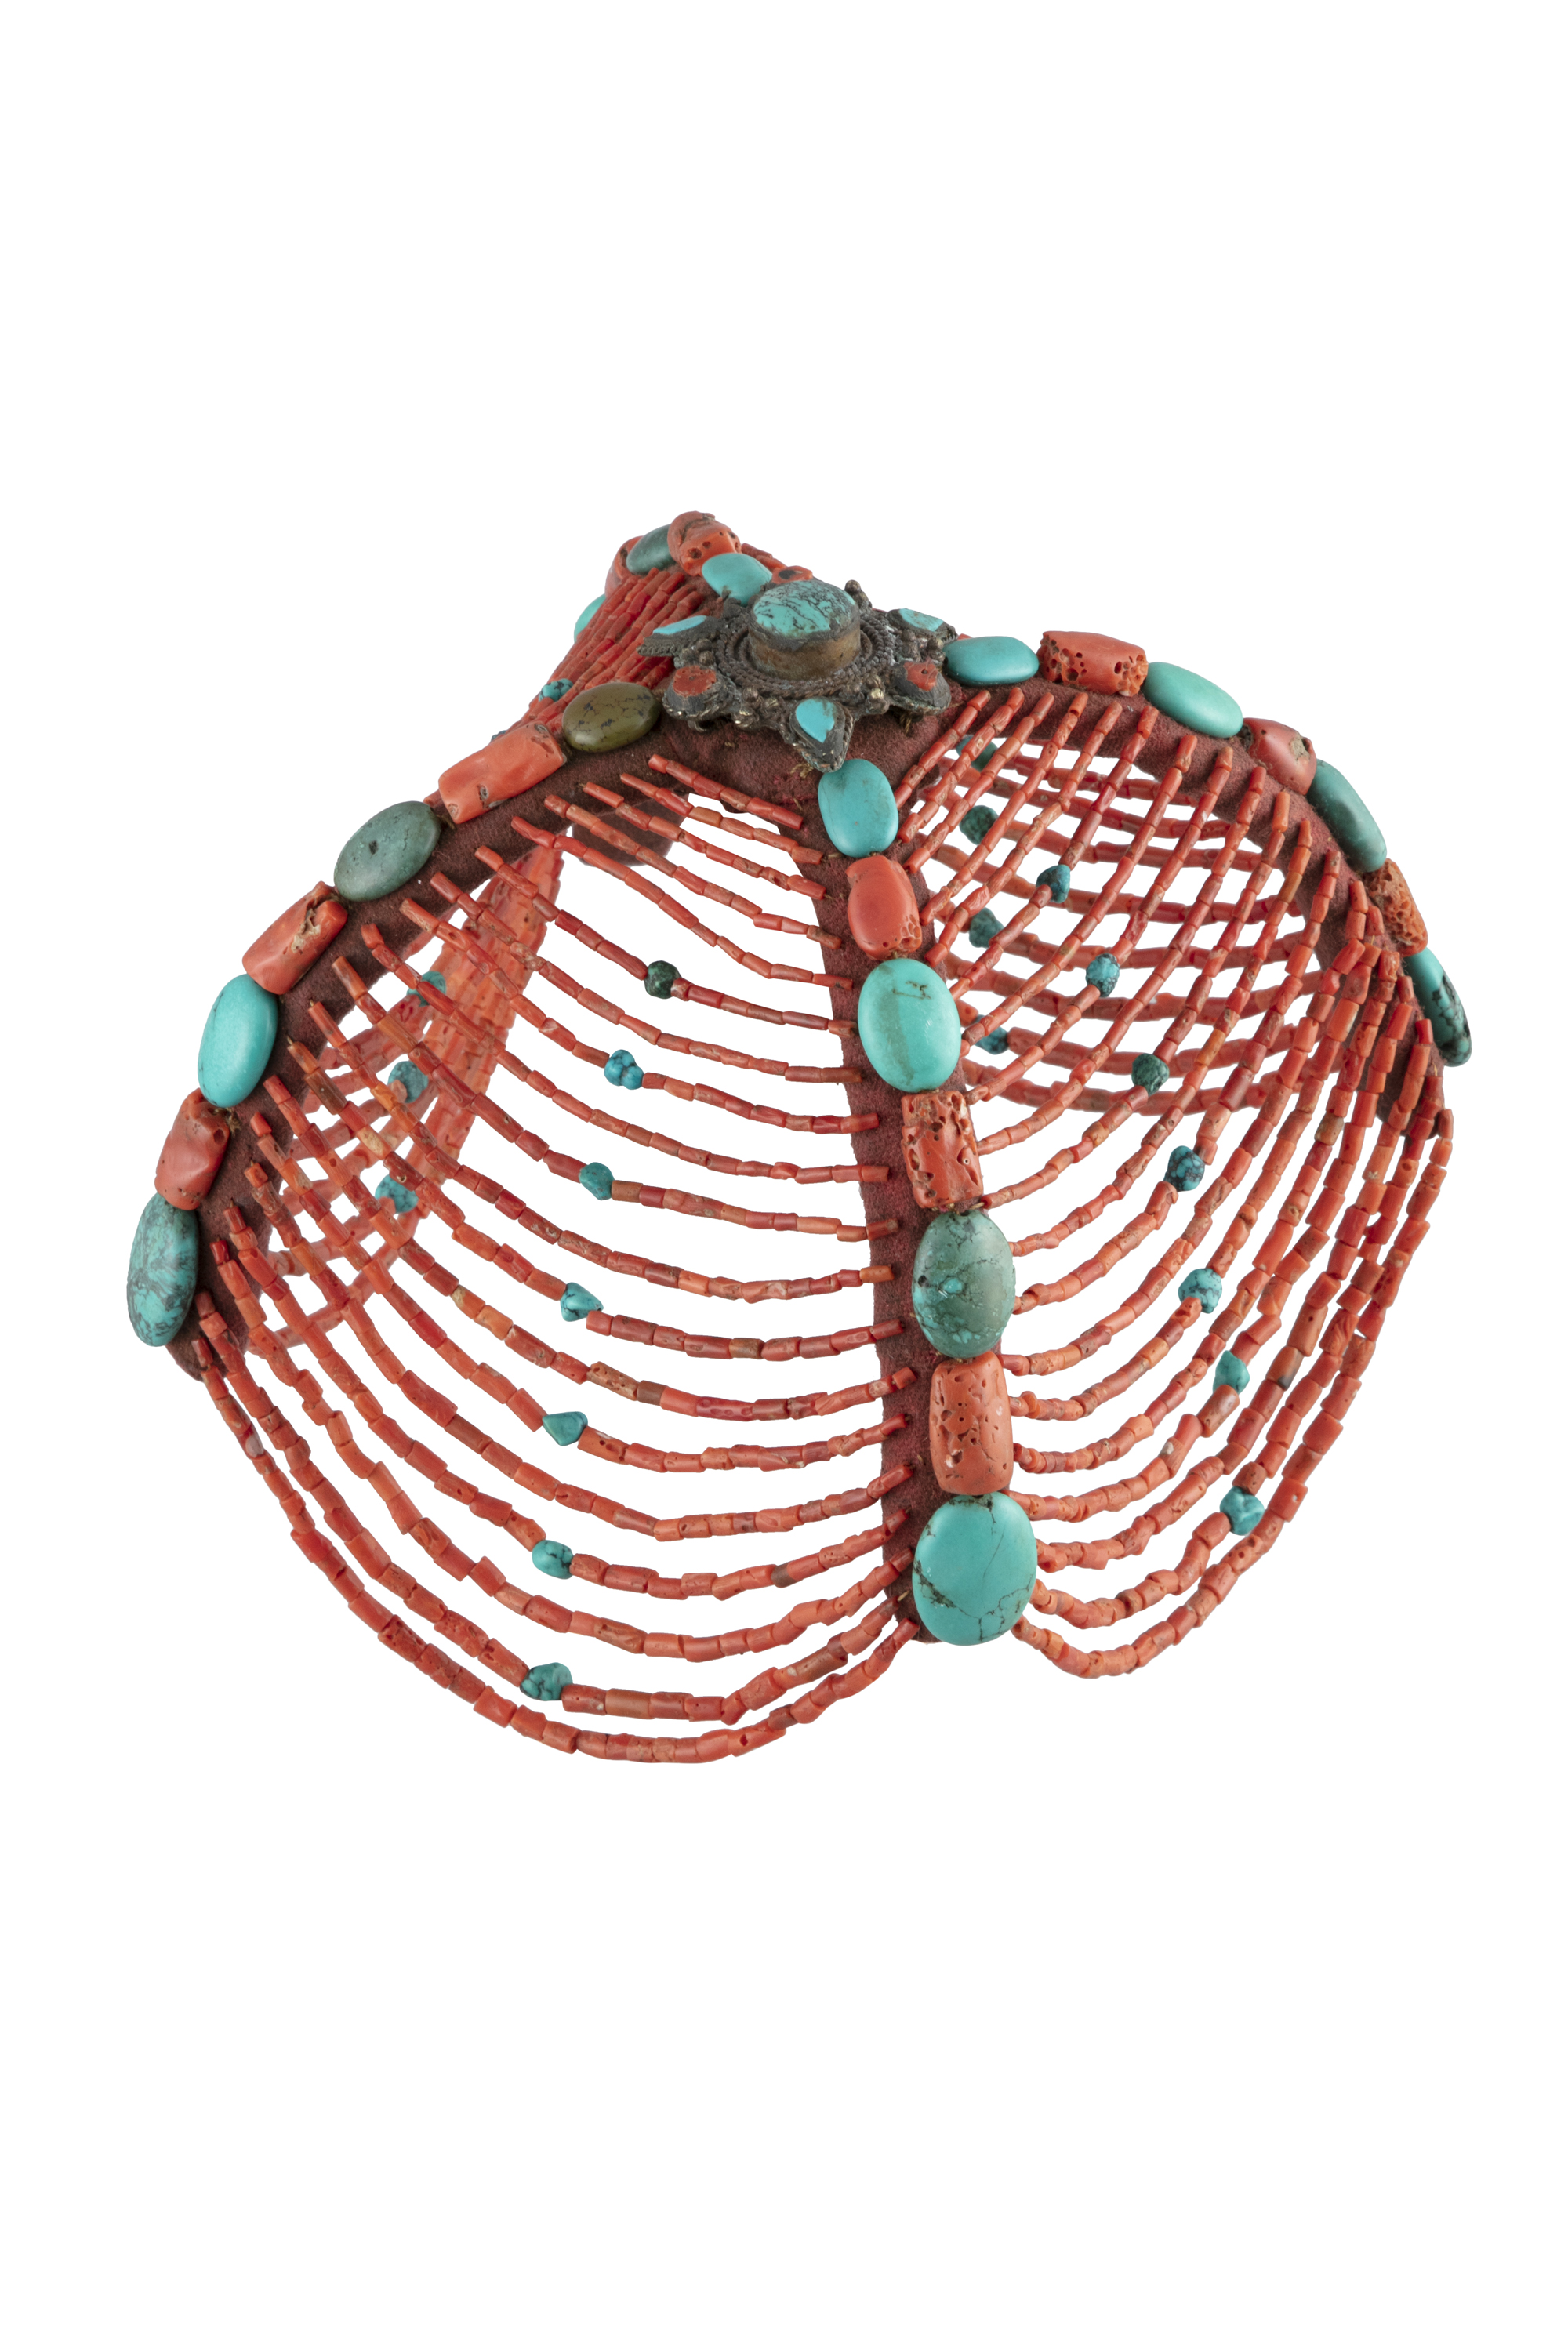 *A TIBETAN CEREMONIAL HEADDRESS Tibet, Himalaya, Likely mid 20th century With turquoise and corals